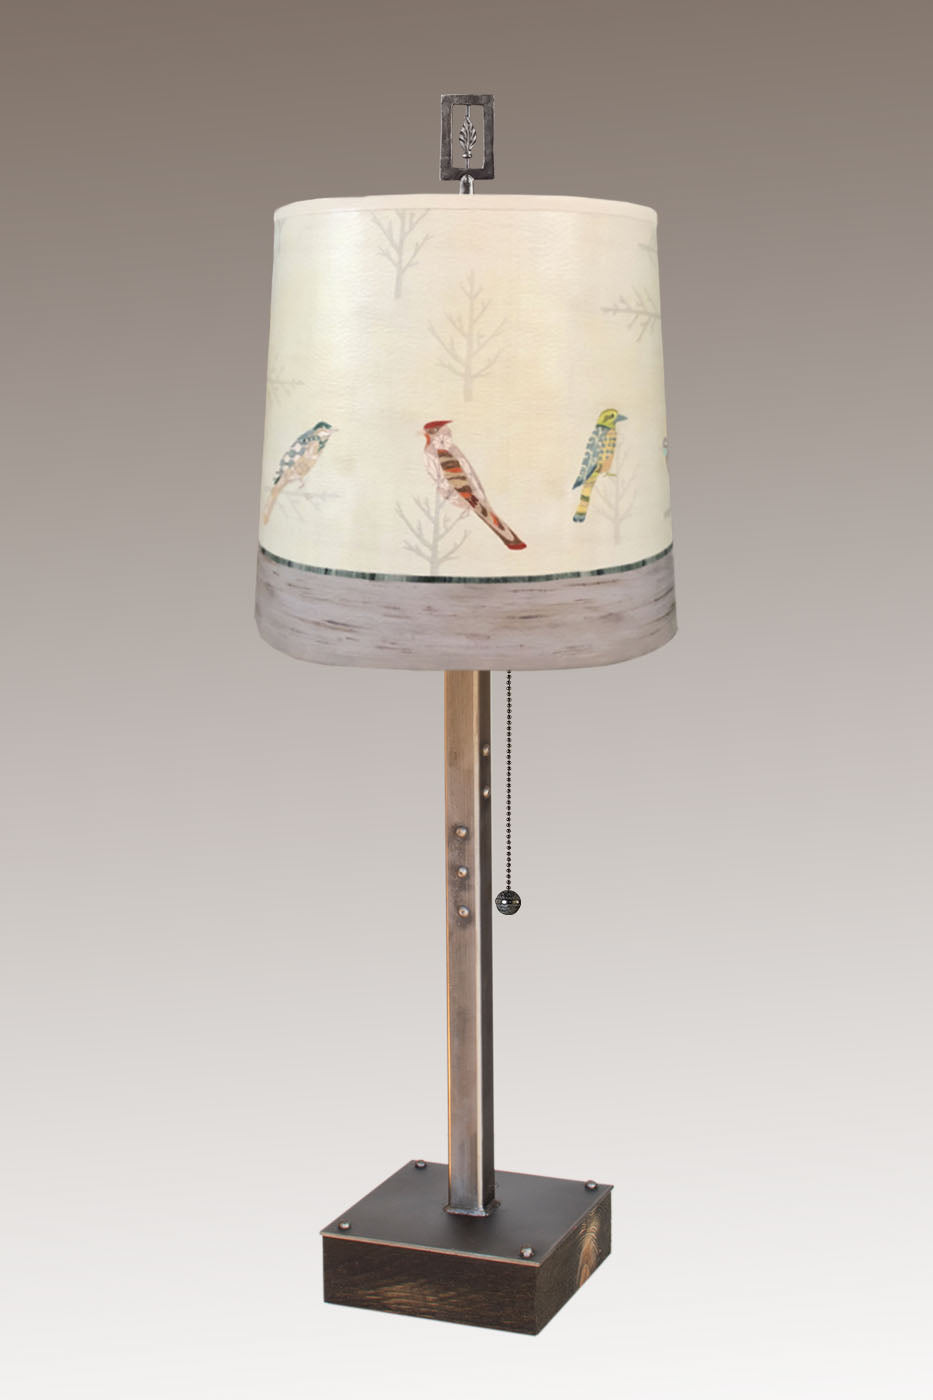 Steel Table Lamp on Wood with Medium Drum Shade in Bird Friends